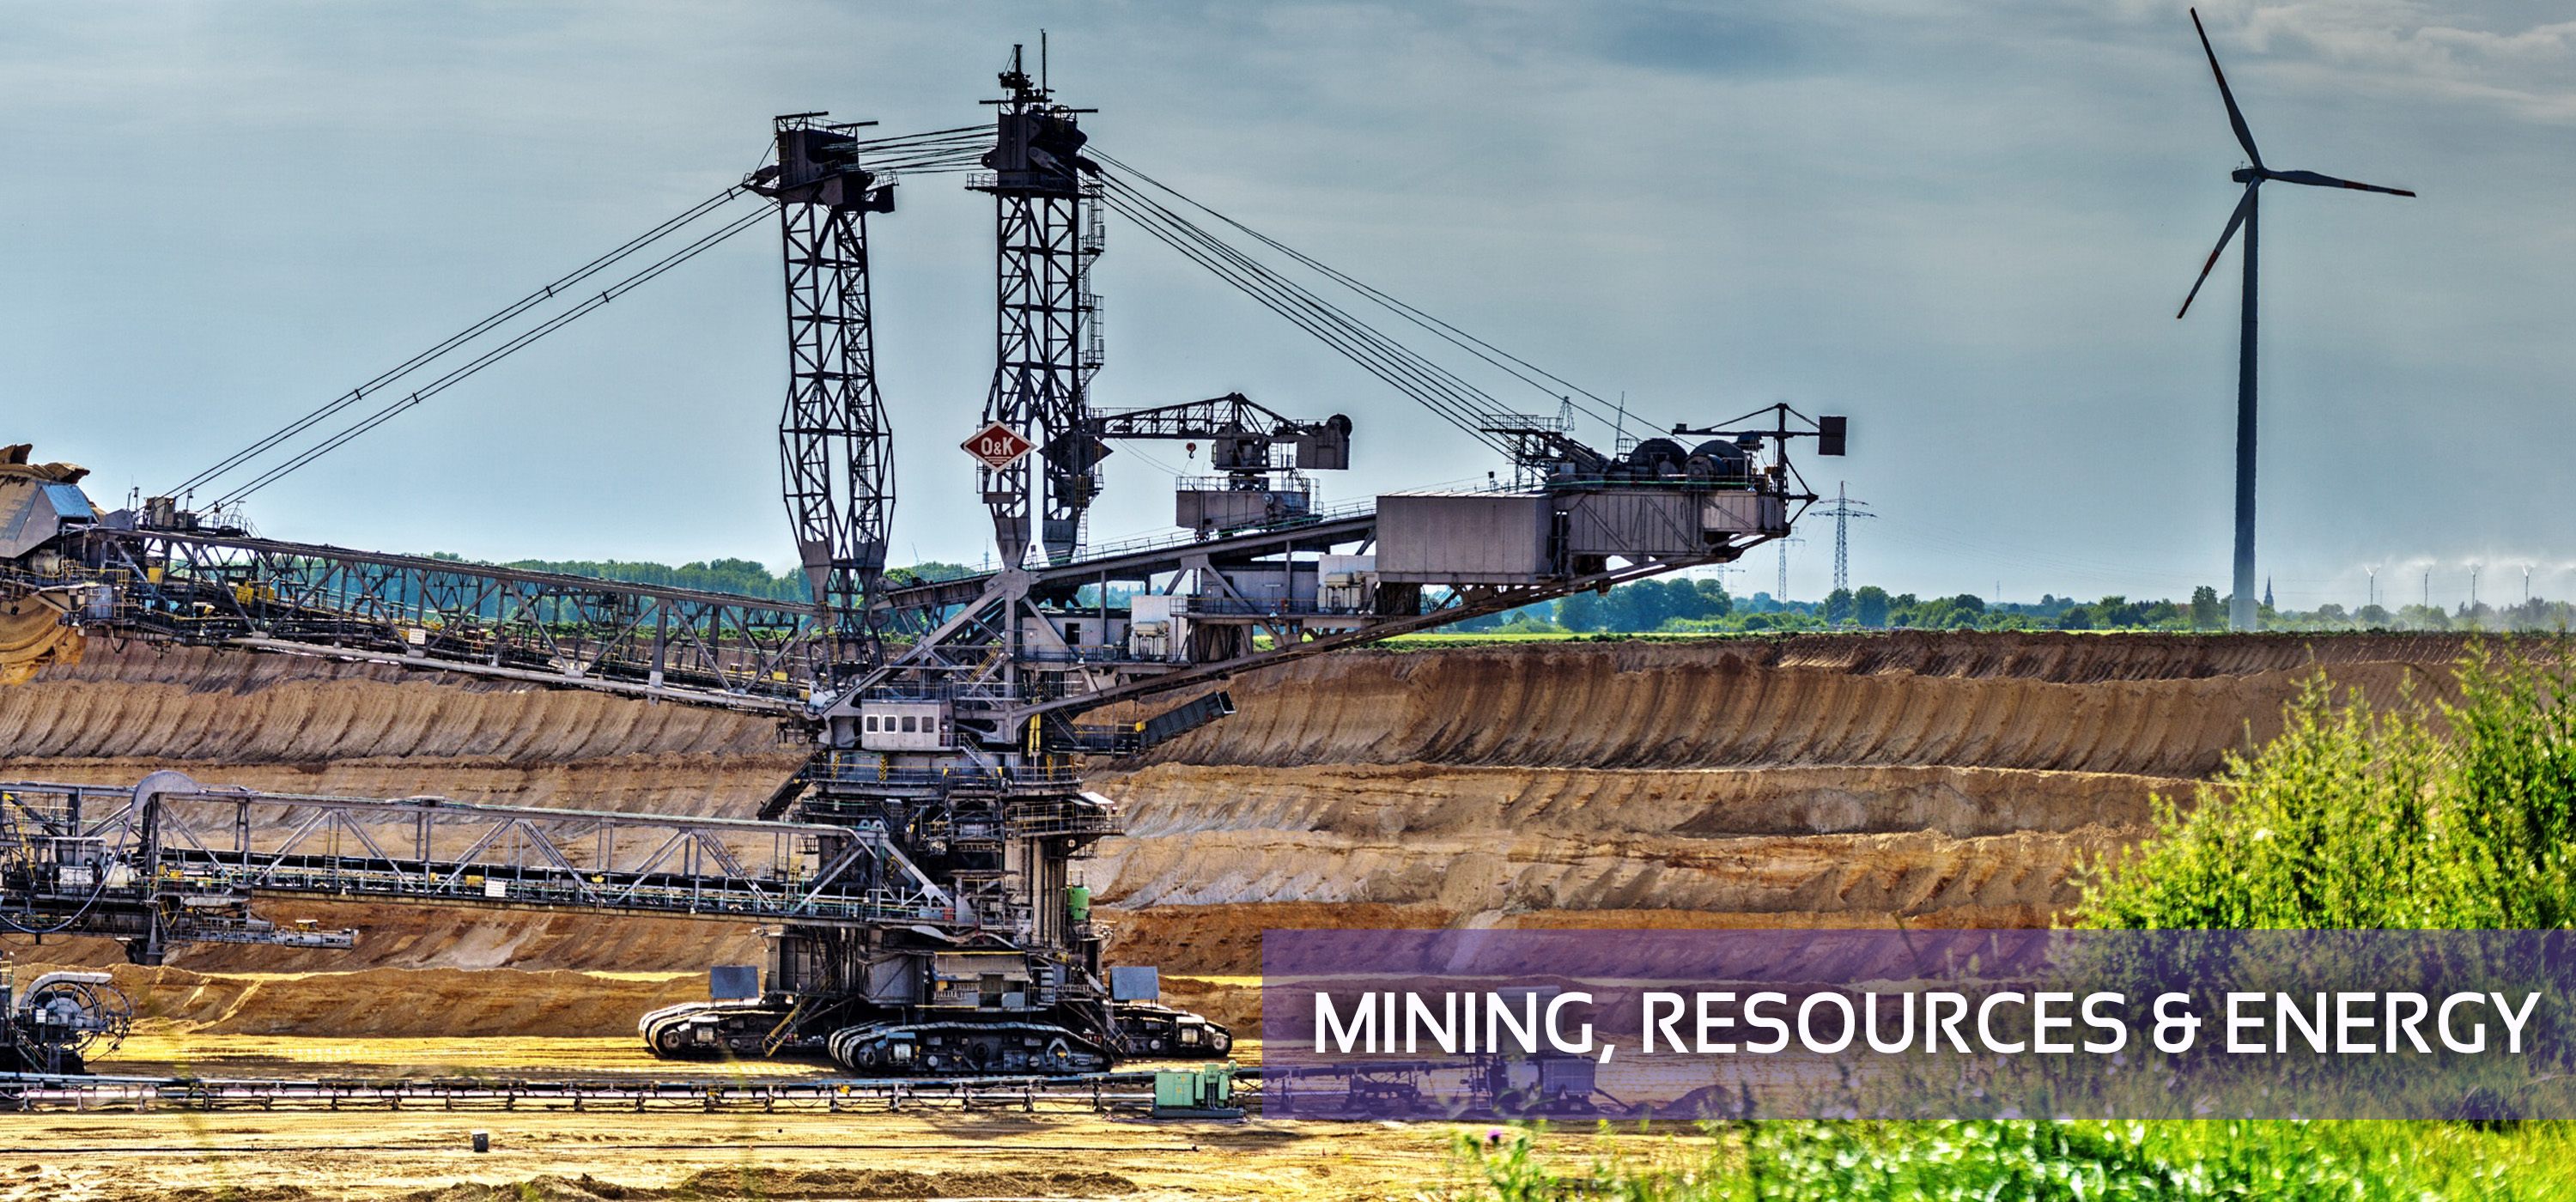 Mining Resources and Energy